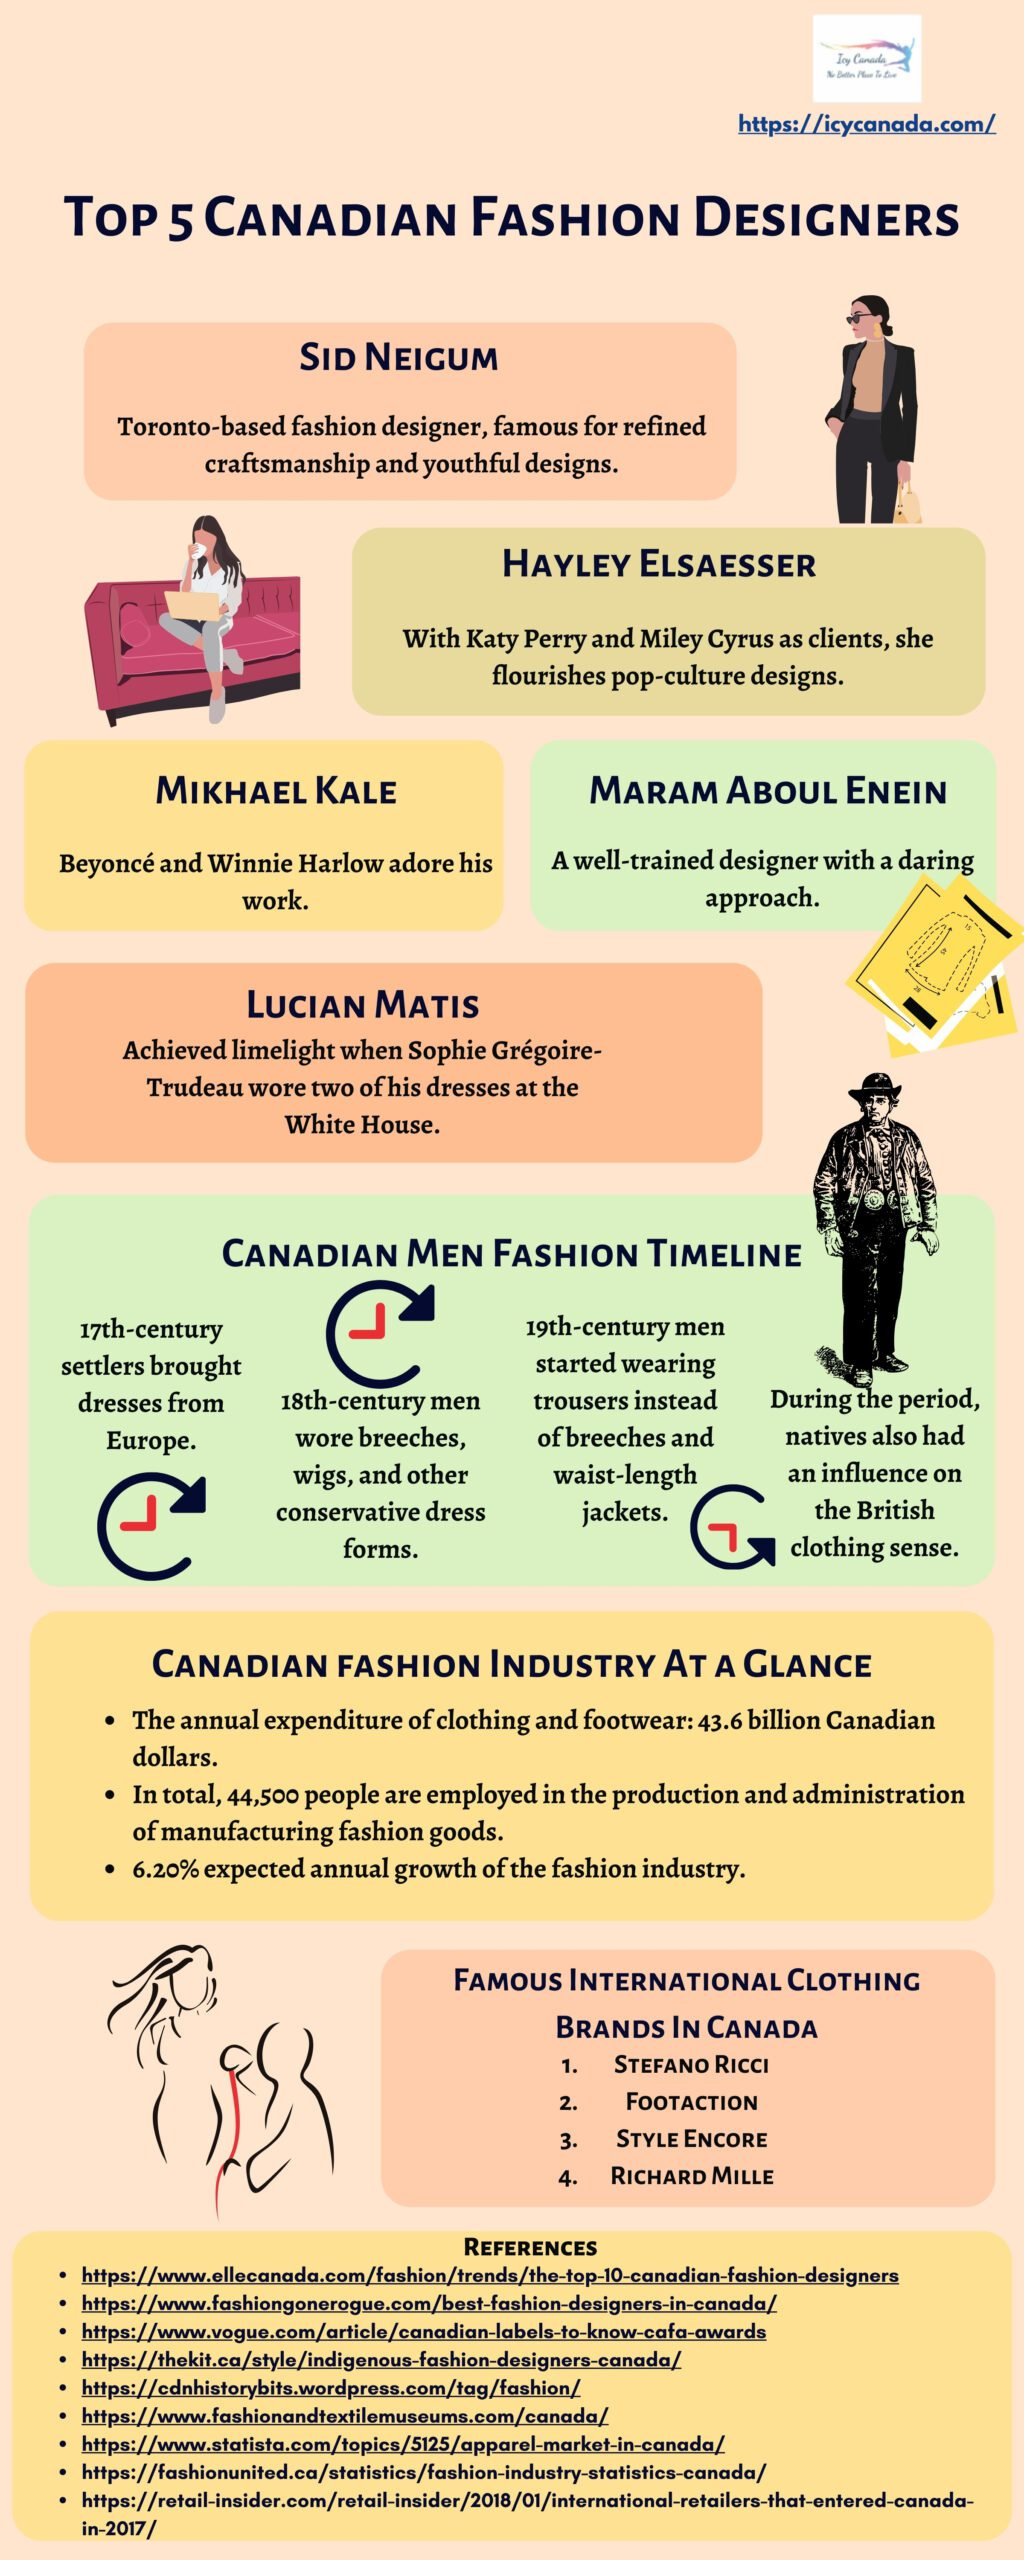 Cool Facts About Canadian Fashion Industry